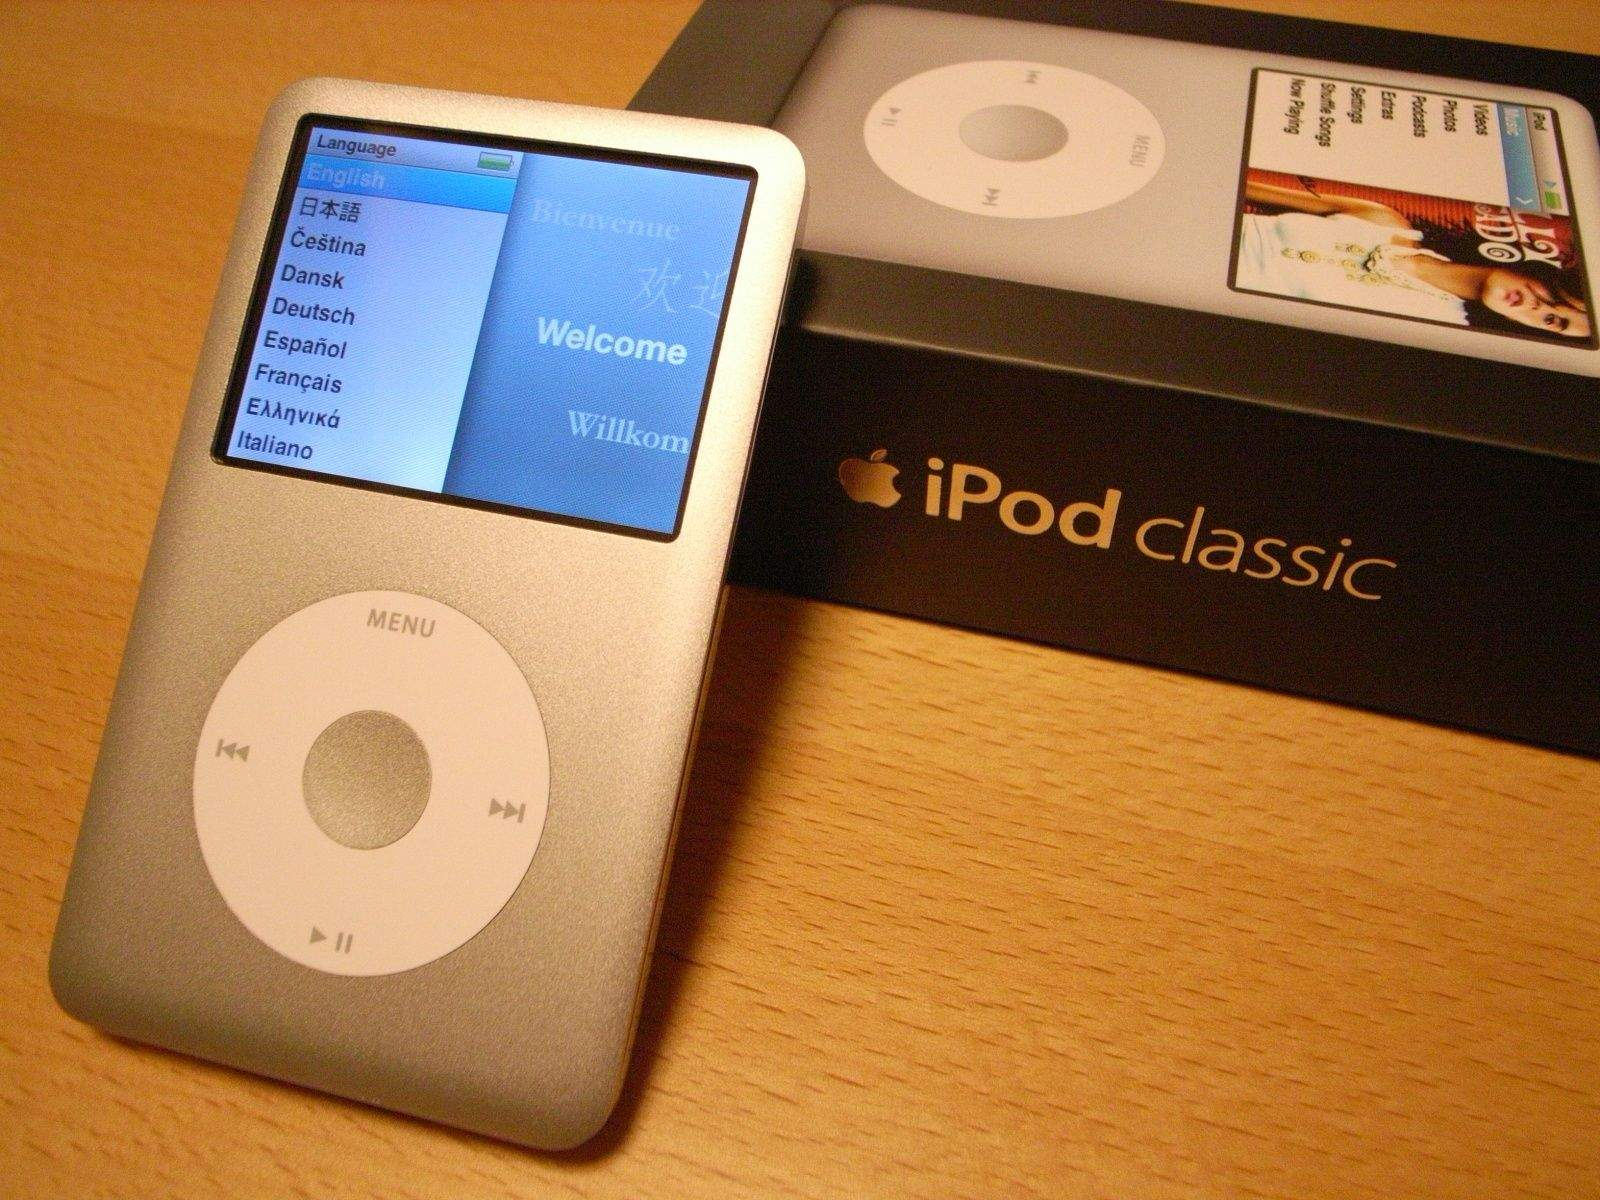 IPod_classic_6G_80GB_packaging-2007-09-22